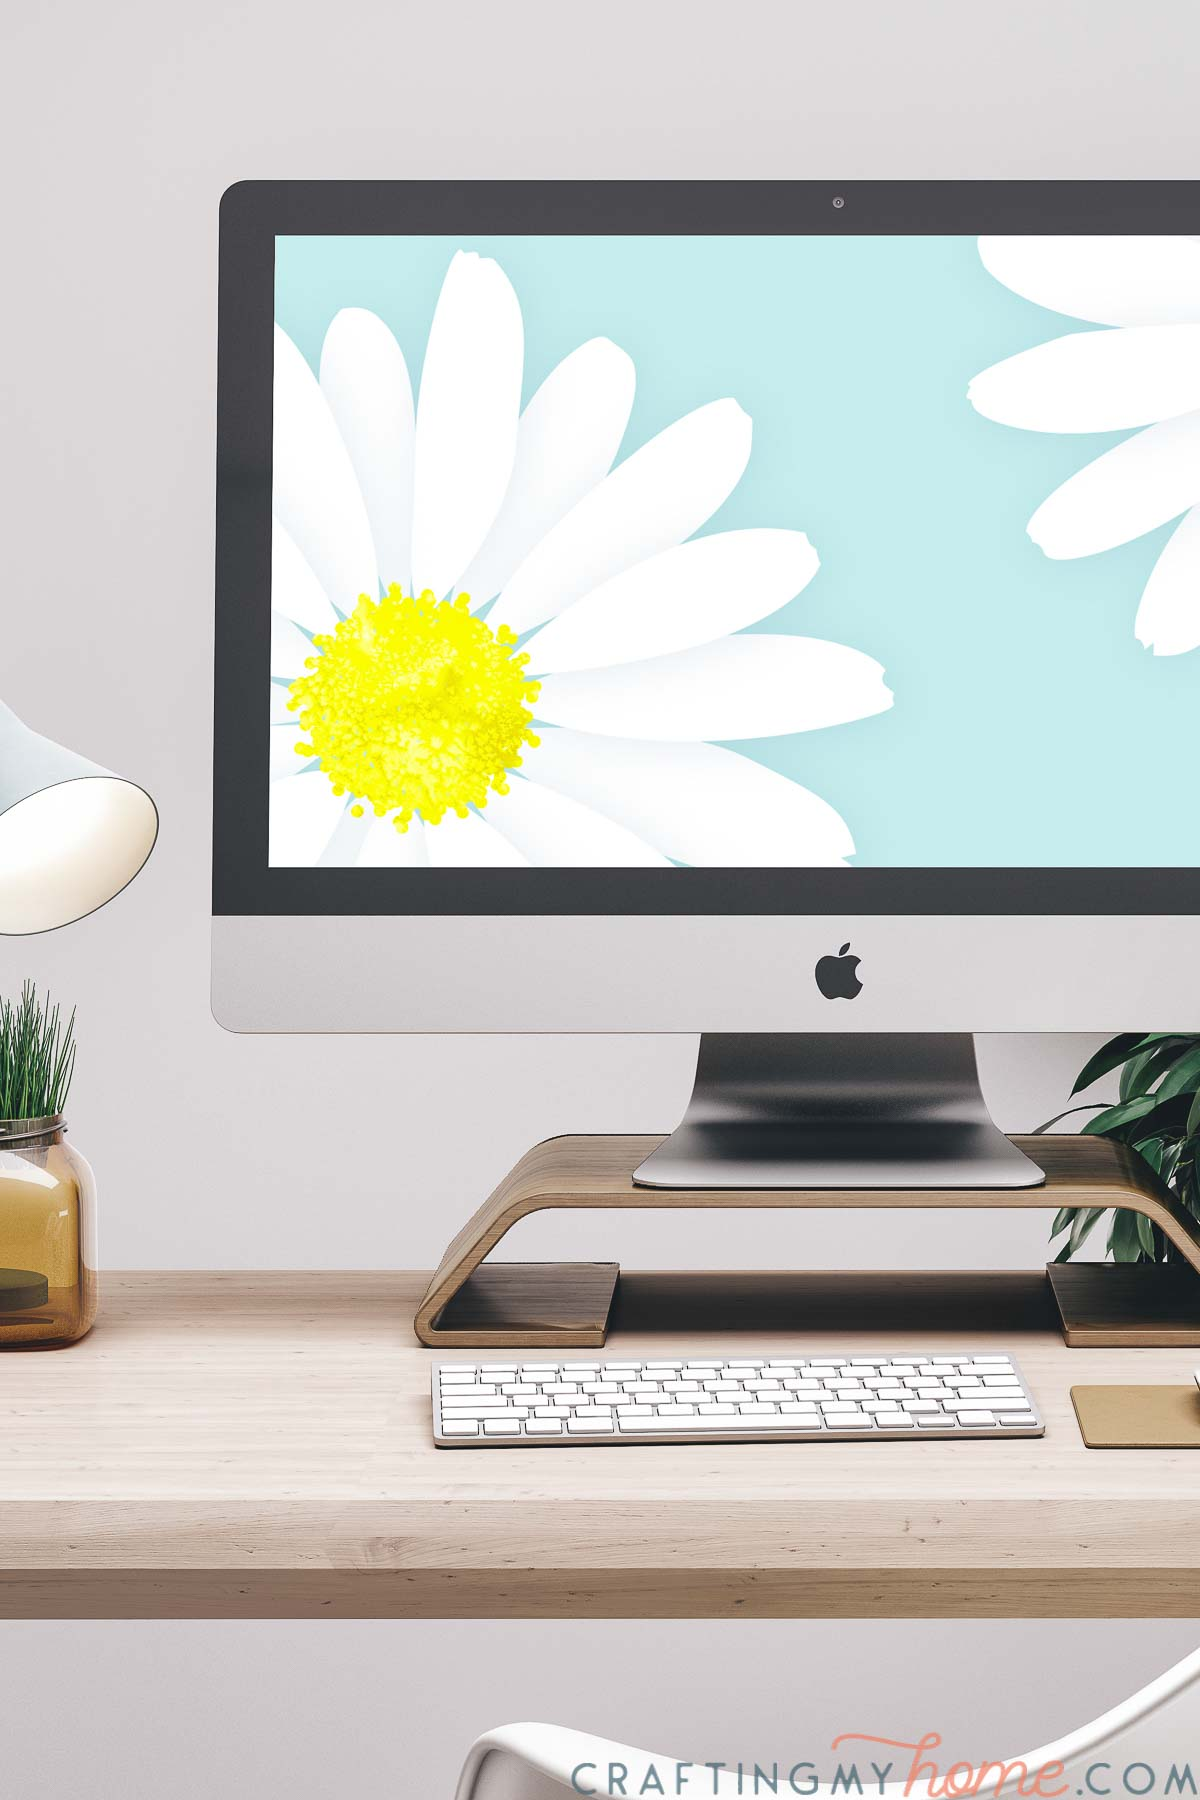 iMac computer on a desk with the giant daisy print on the screen as a digital wallpaper.